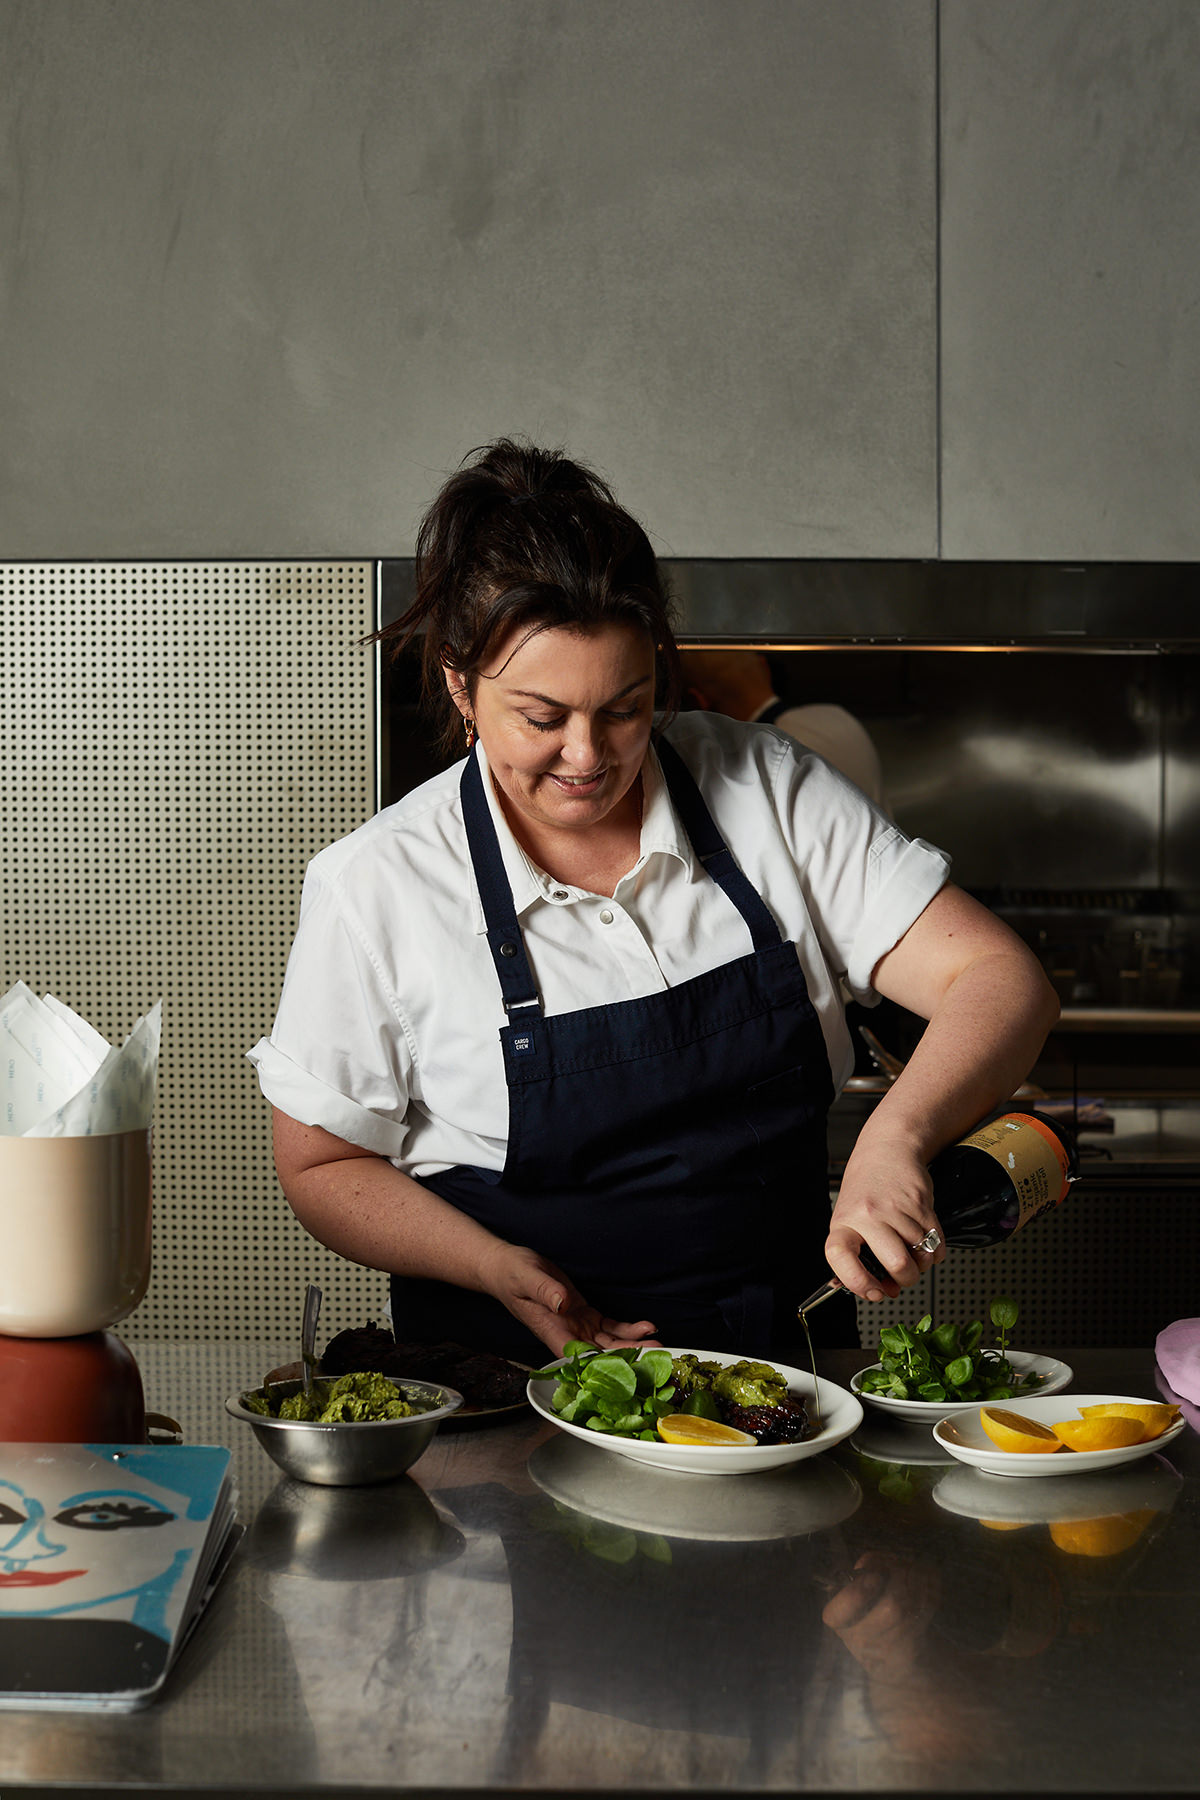 After learning the basics at Tansy's, Martini was mostly self-taught and landed her first head chef gig at 20.